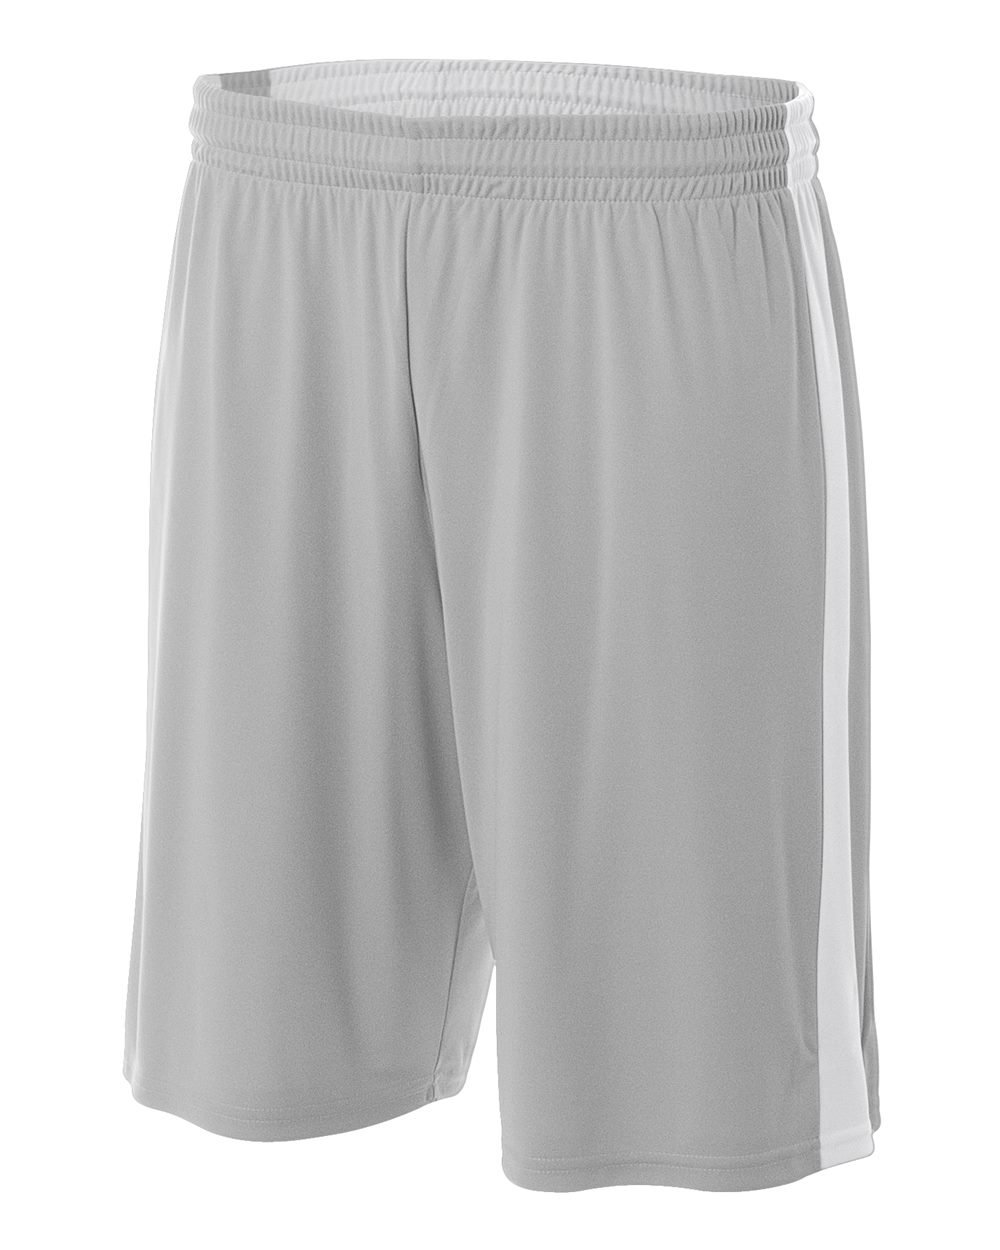 Reversible Silver/White Youth Small 8'' Uniform Jersey Shorts